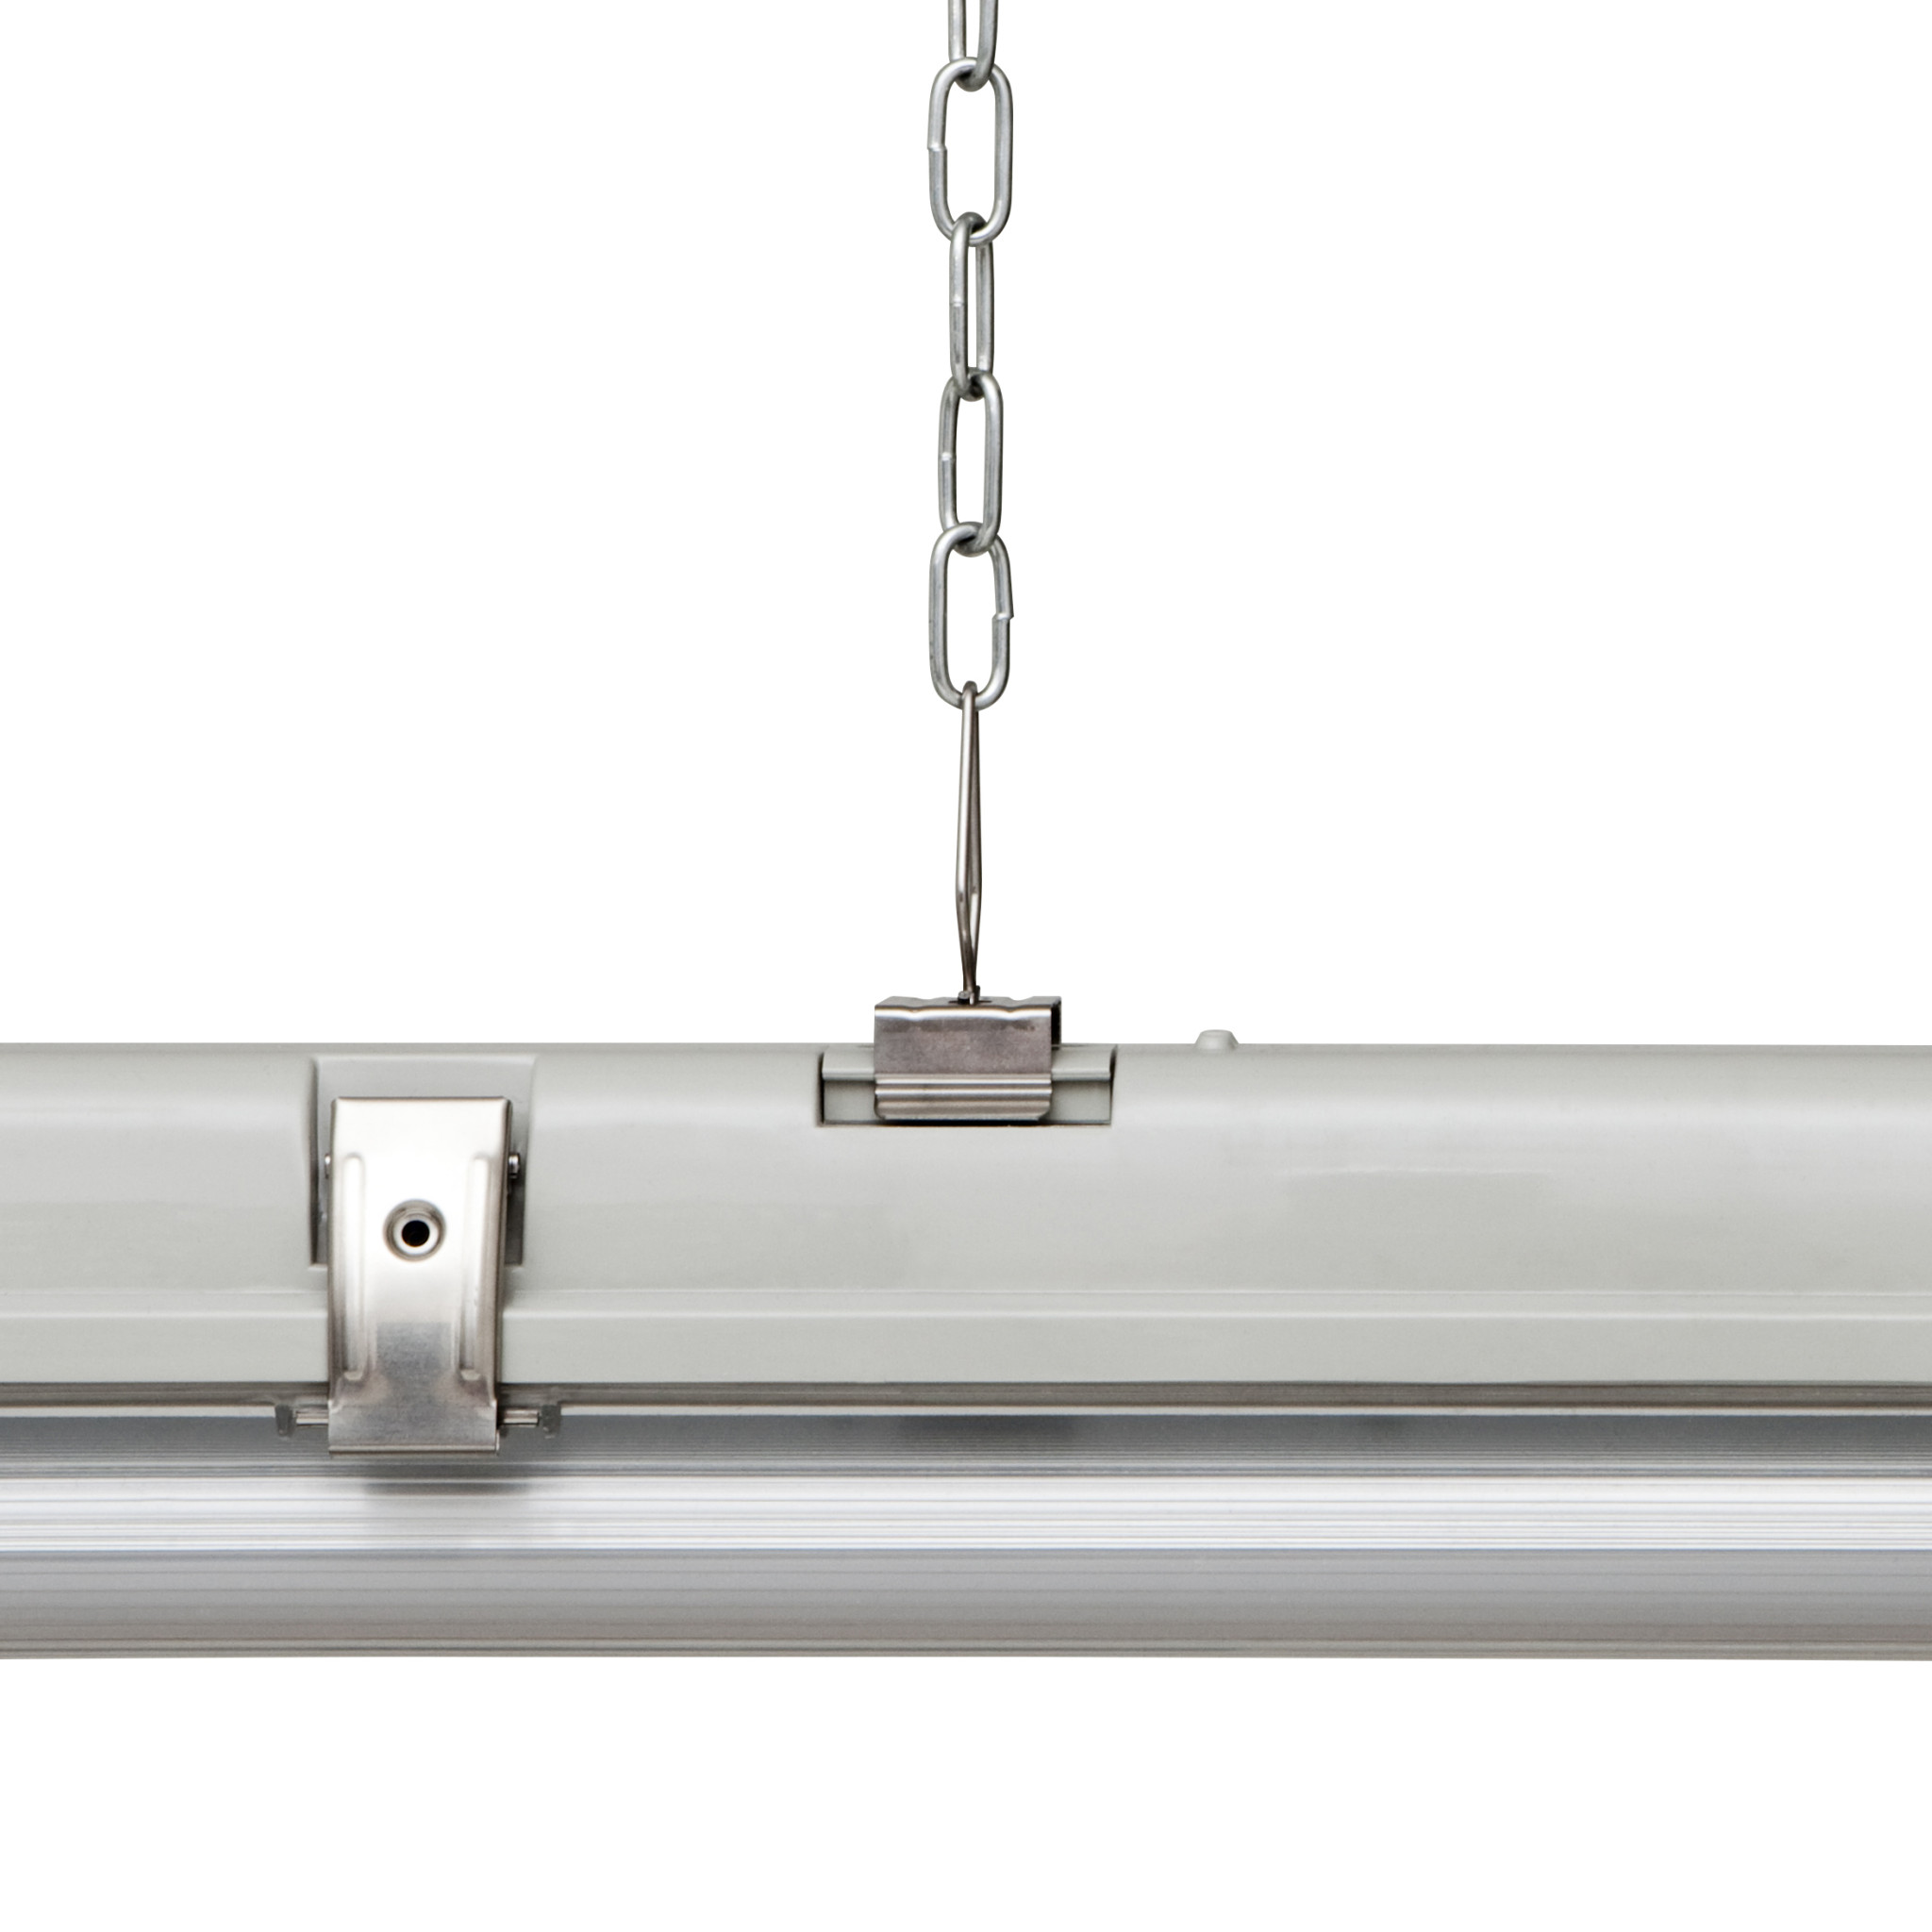 Verbatim led chain suspension kit for batten luminaires for Suspension luminaire filaire